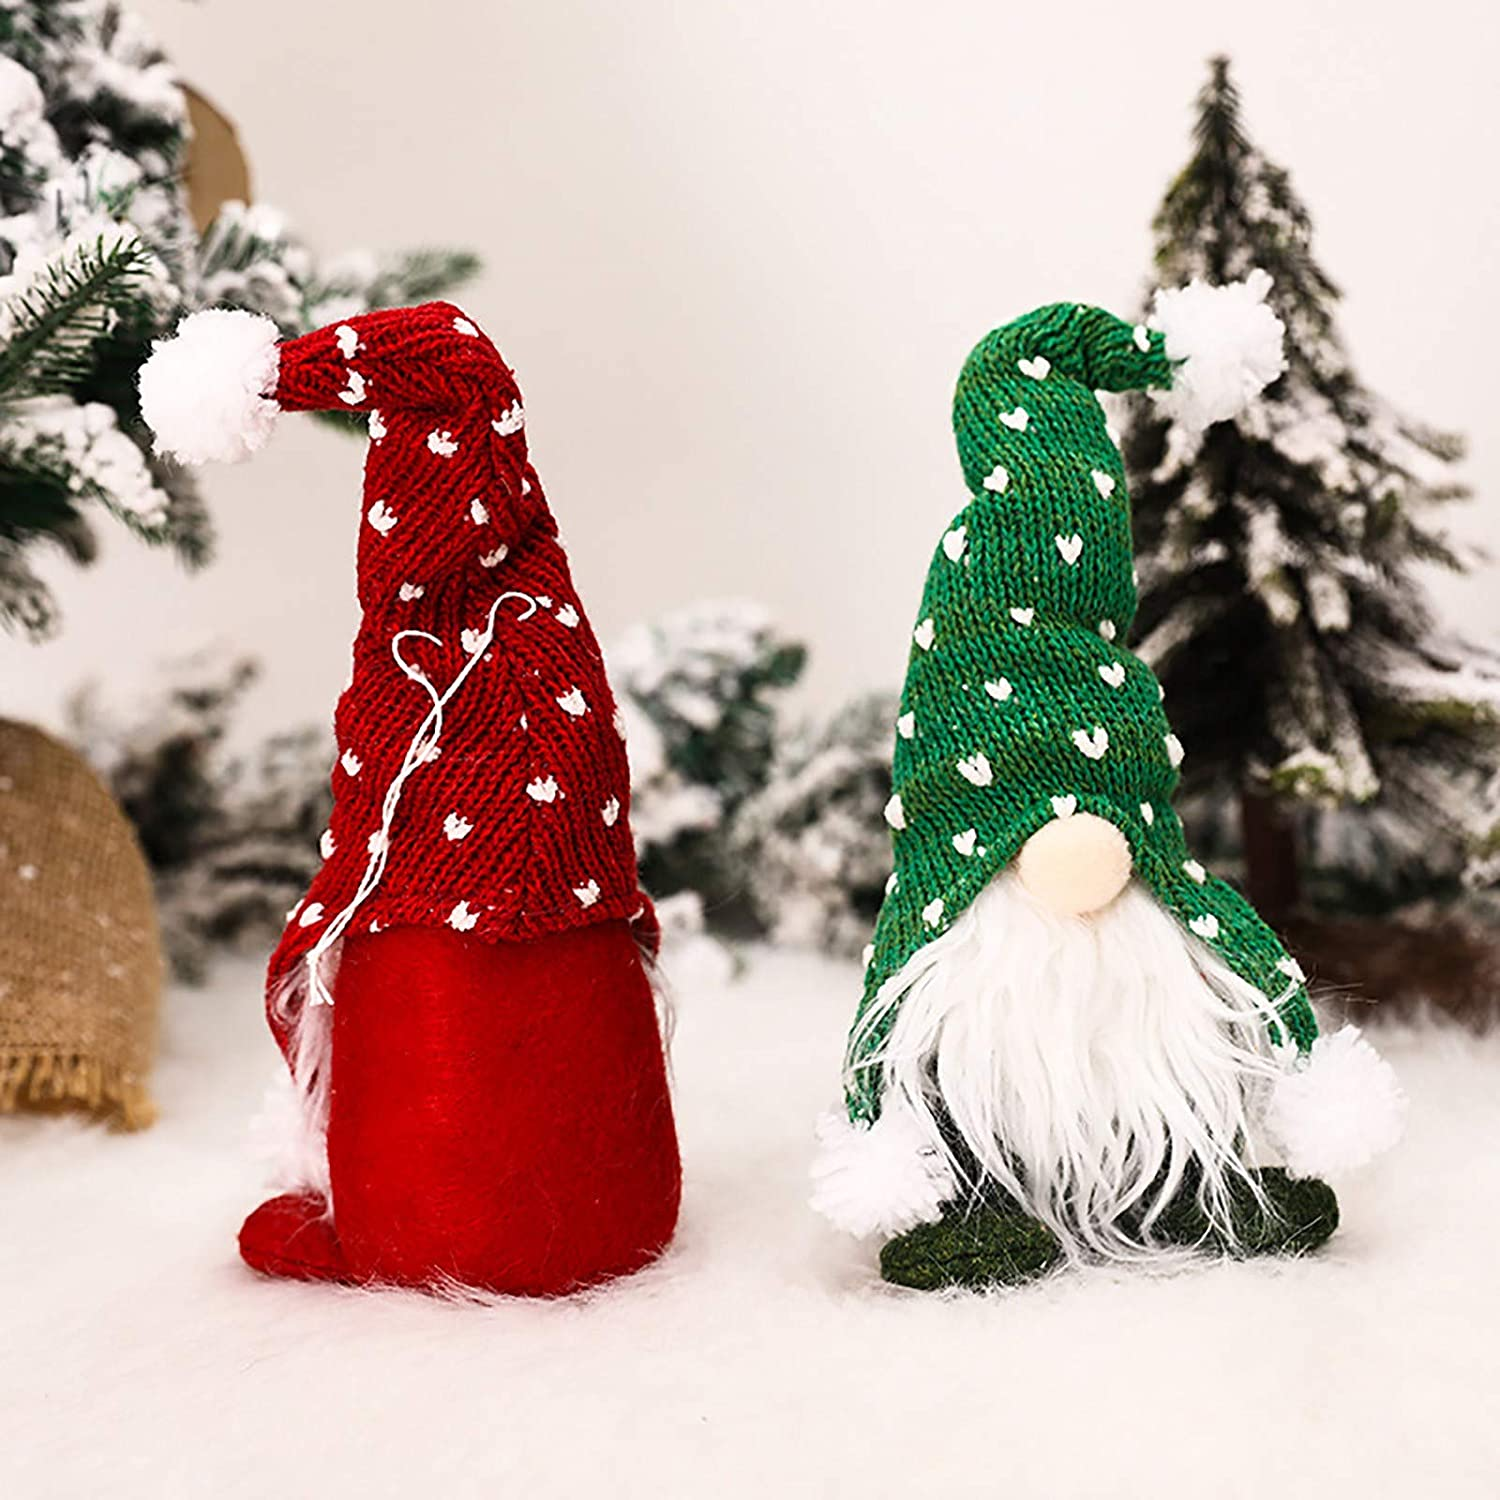 Red winwintom Christmas Tree Ornaments Faceless Doll Plush Long Hat Forest Man Santa Claus Birthday Present Holiday Home Table Decor Ornaments